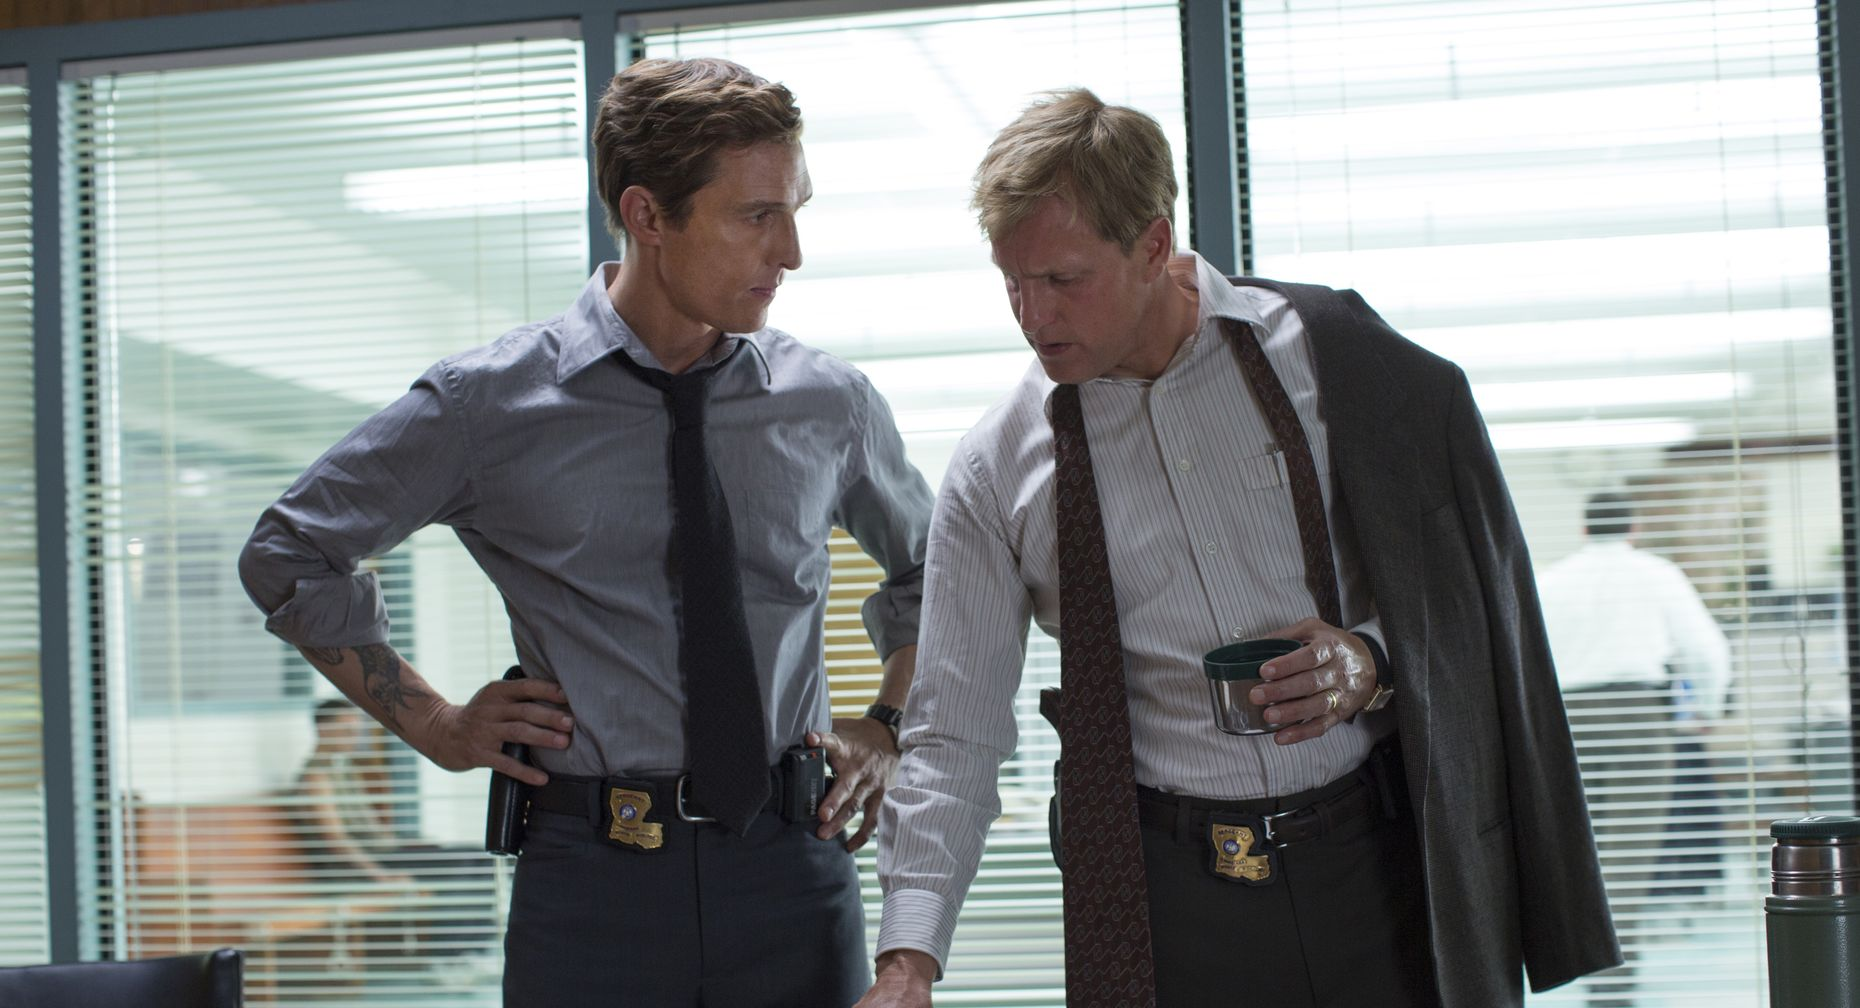 """An episode of HBO's """"True Detective."""" Photo by HBO via Associated Press."""